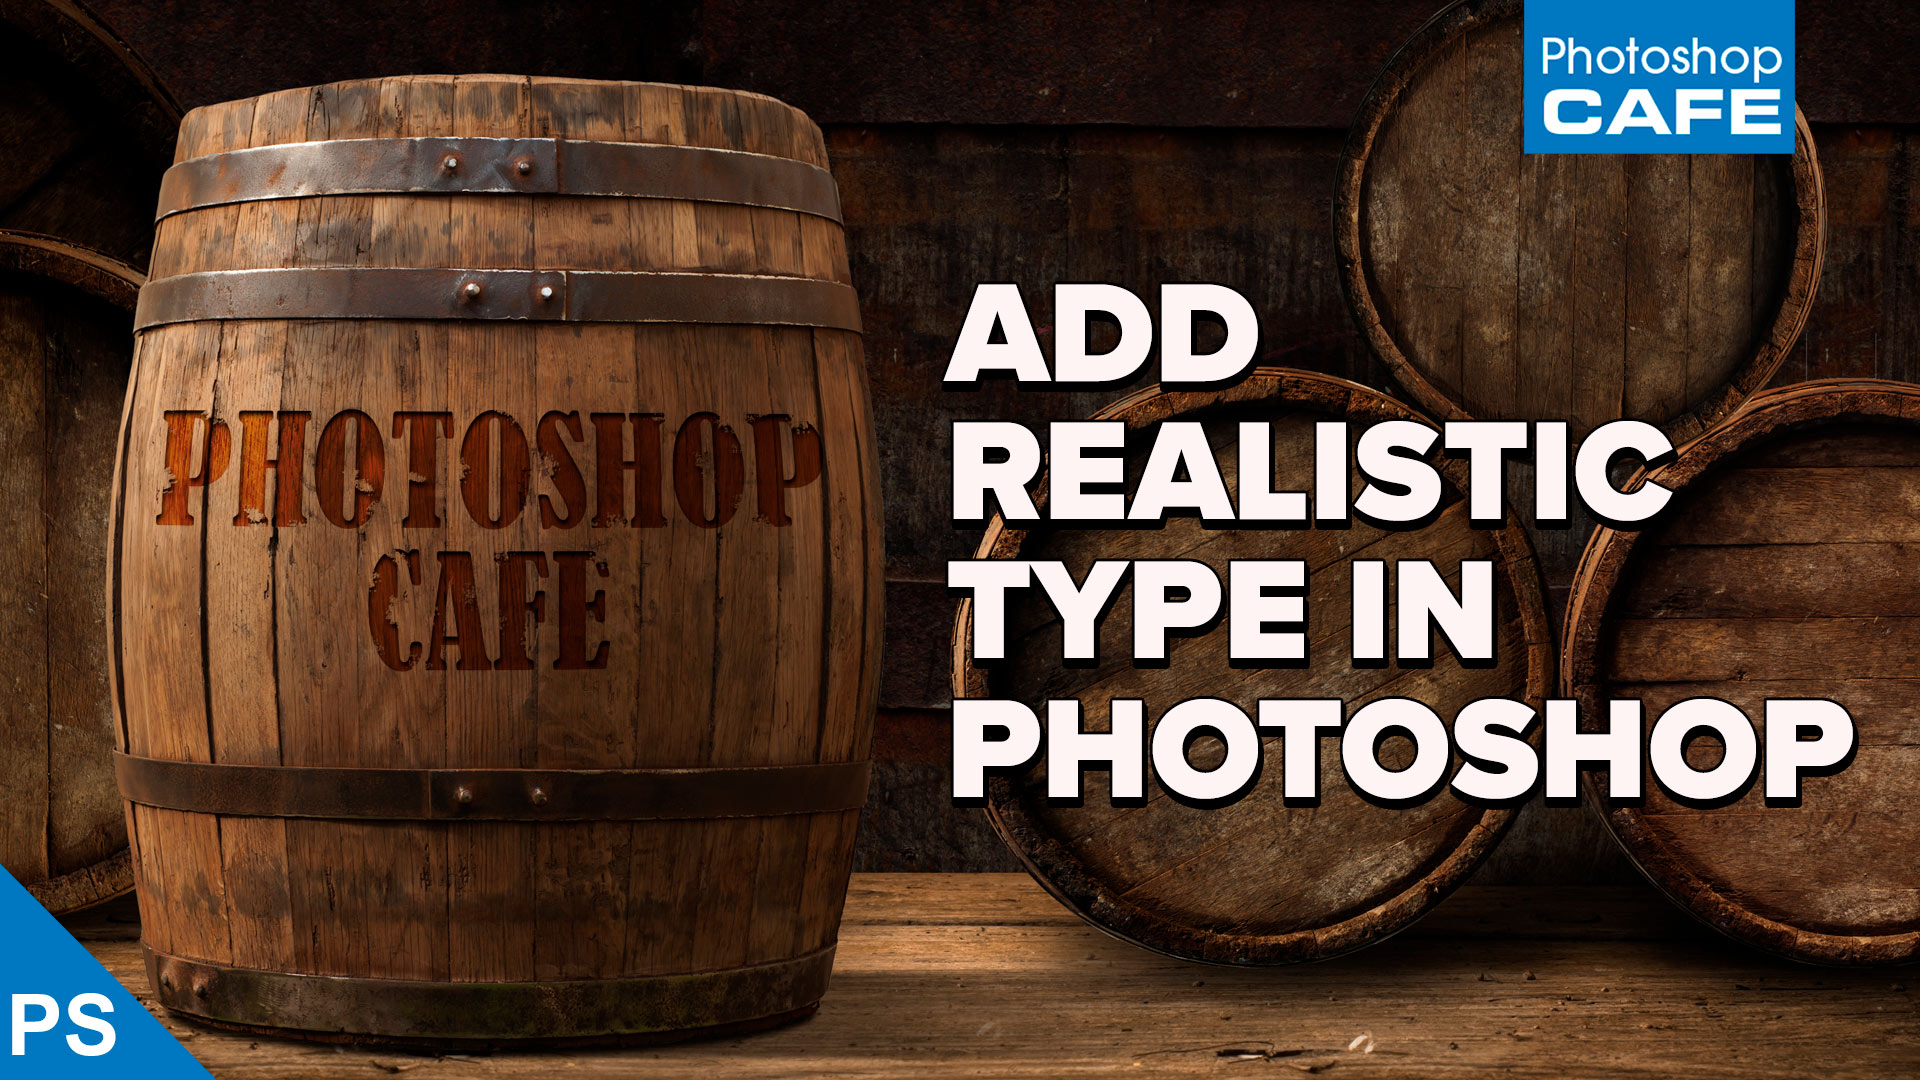 How to blend text into a photo realistically in Adobe